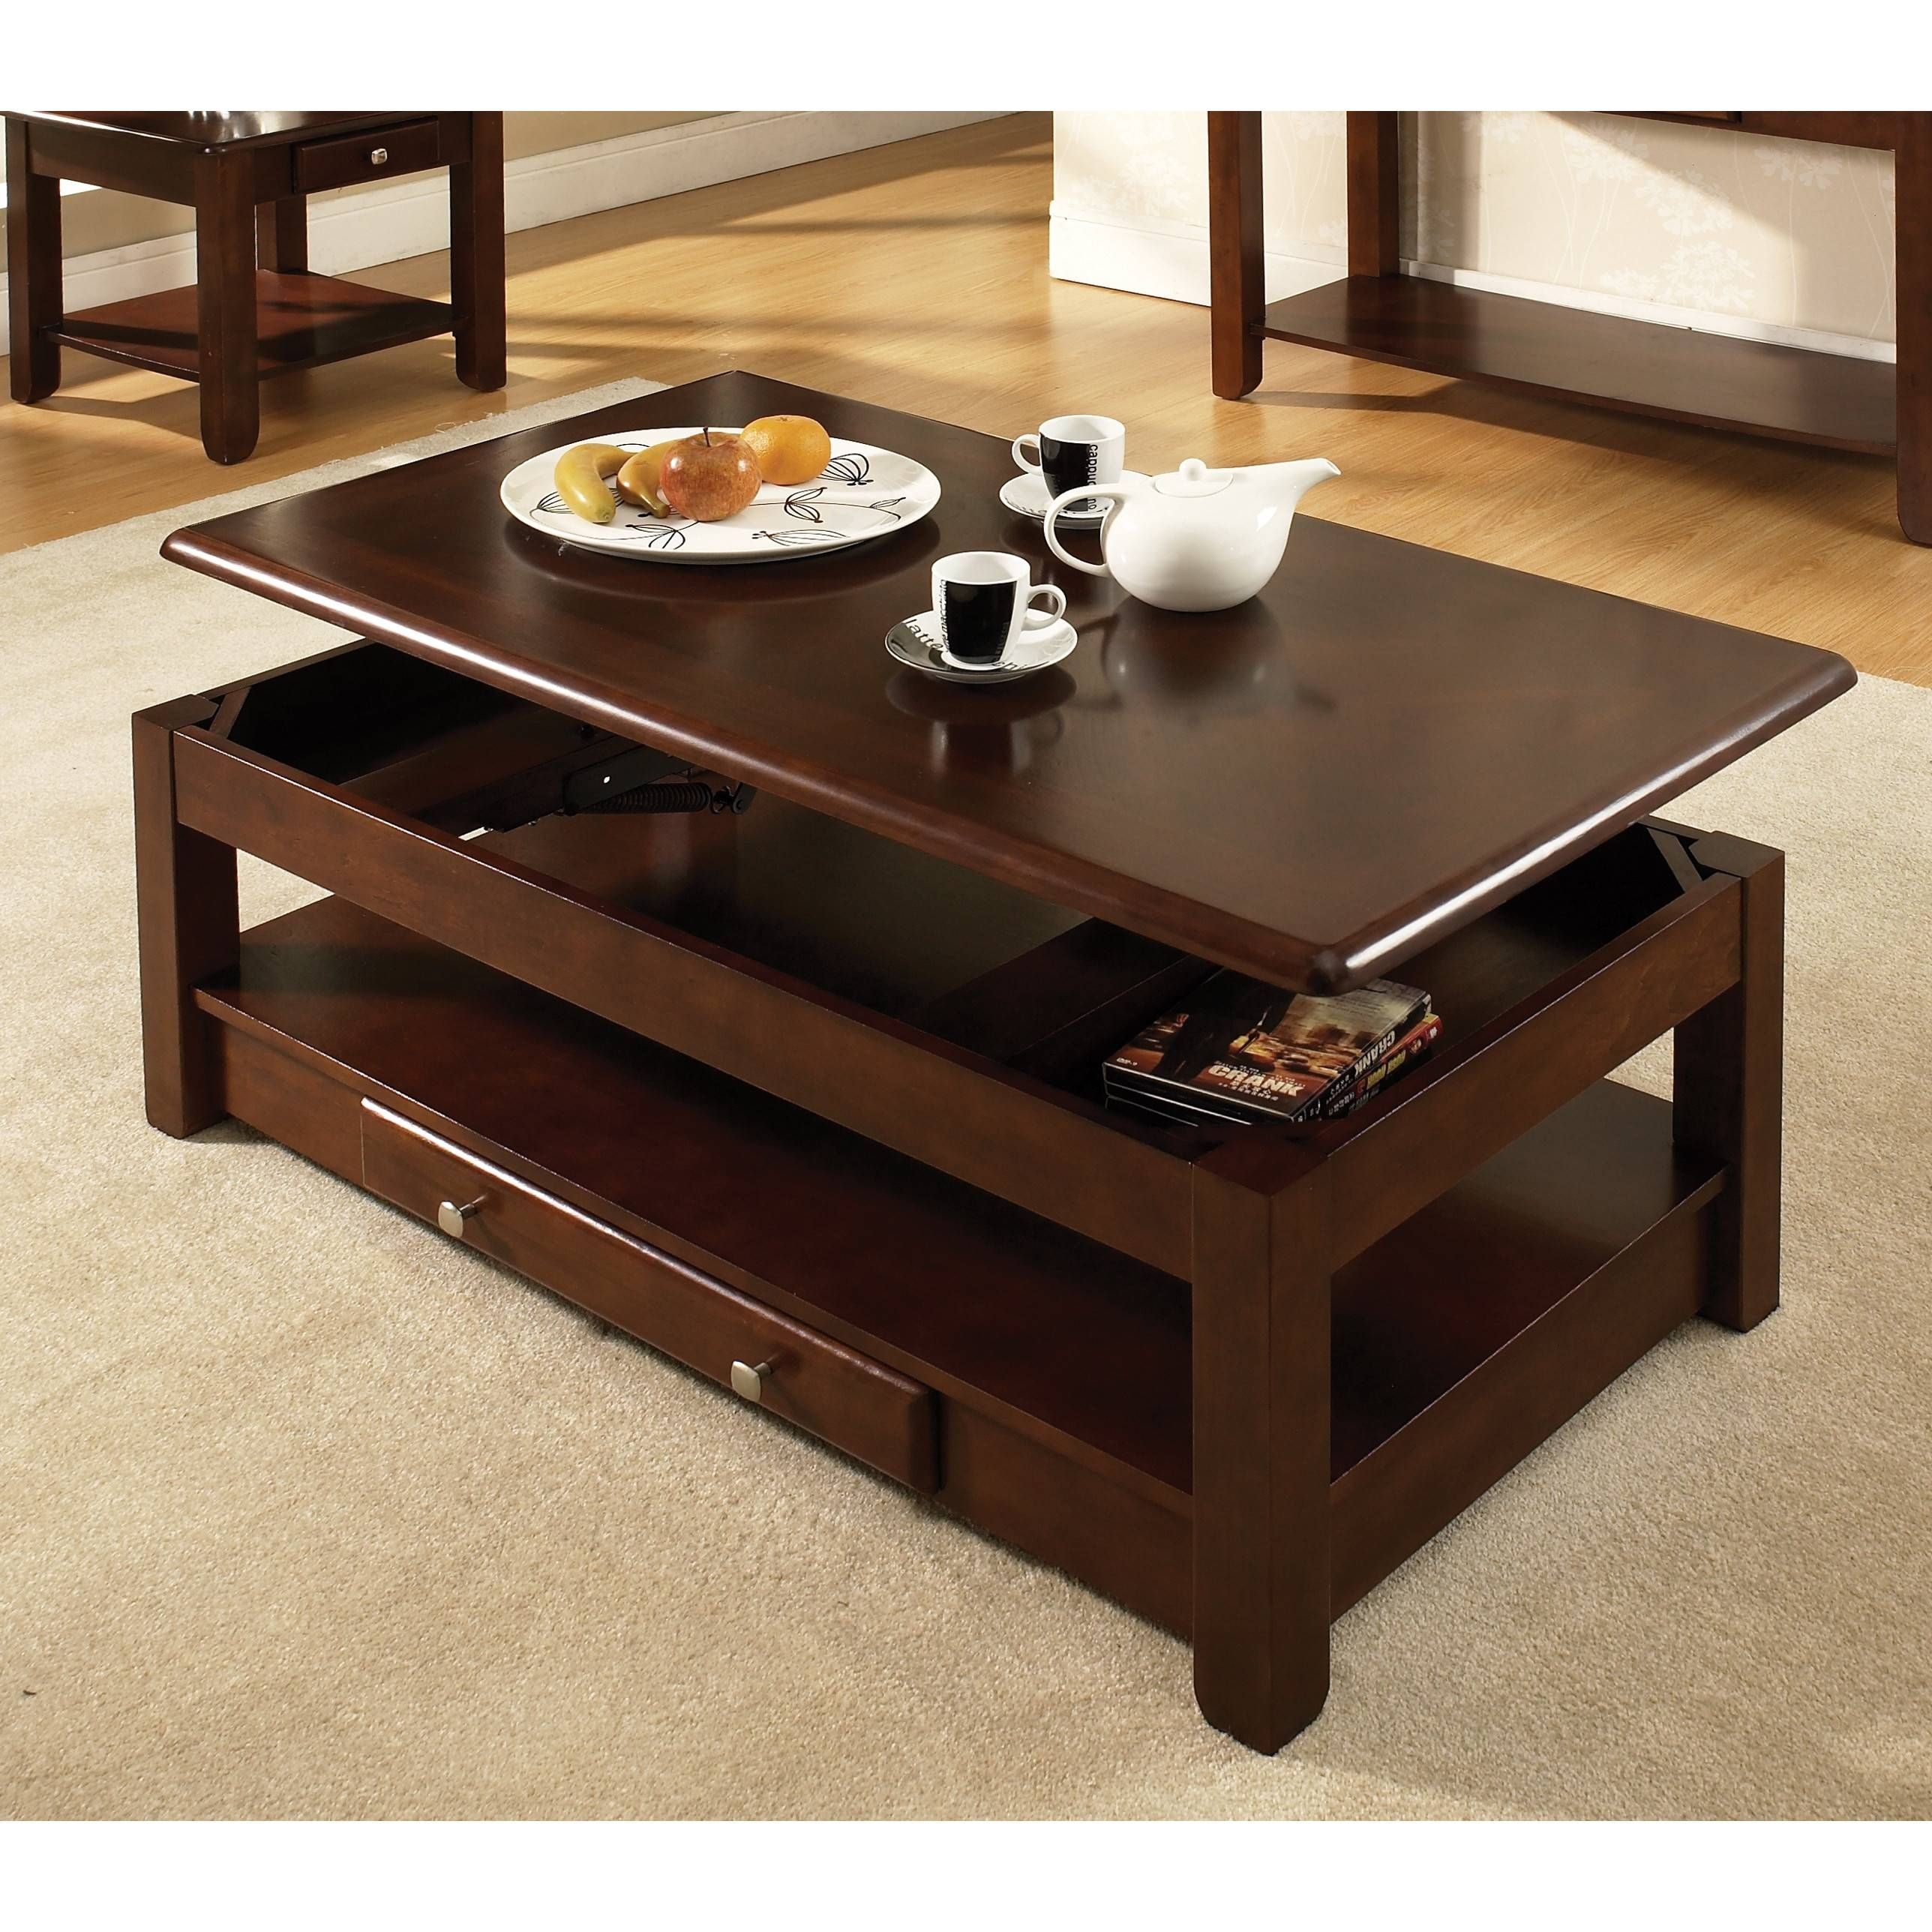 Get The Best Lift Top Coffee Table For Living Room – Lift Top in Lift Coffee Tables (Image 9 of 30)